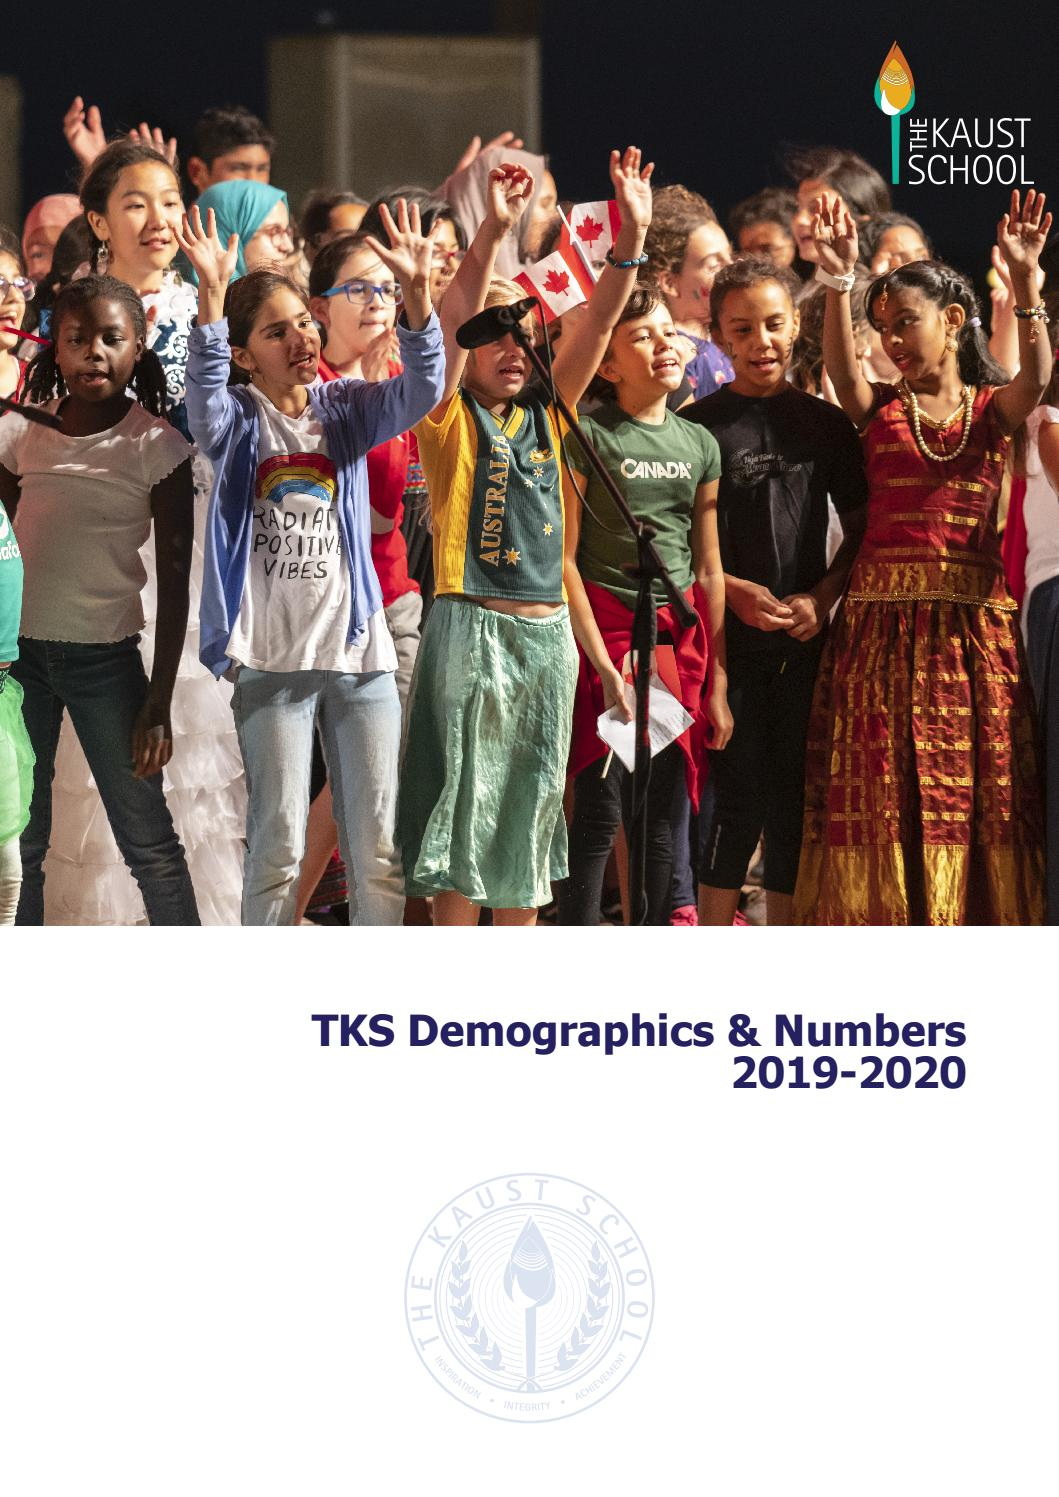 The Kaust School Demographics And Numbers 2019 2020 By The Kaust School Issuu